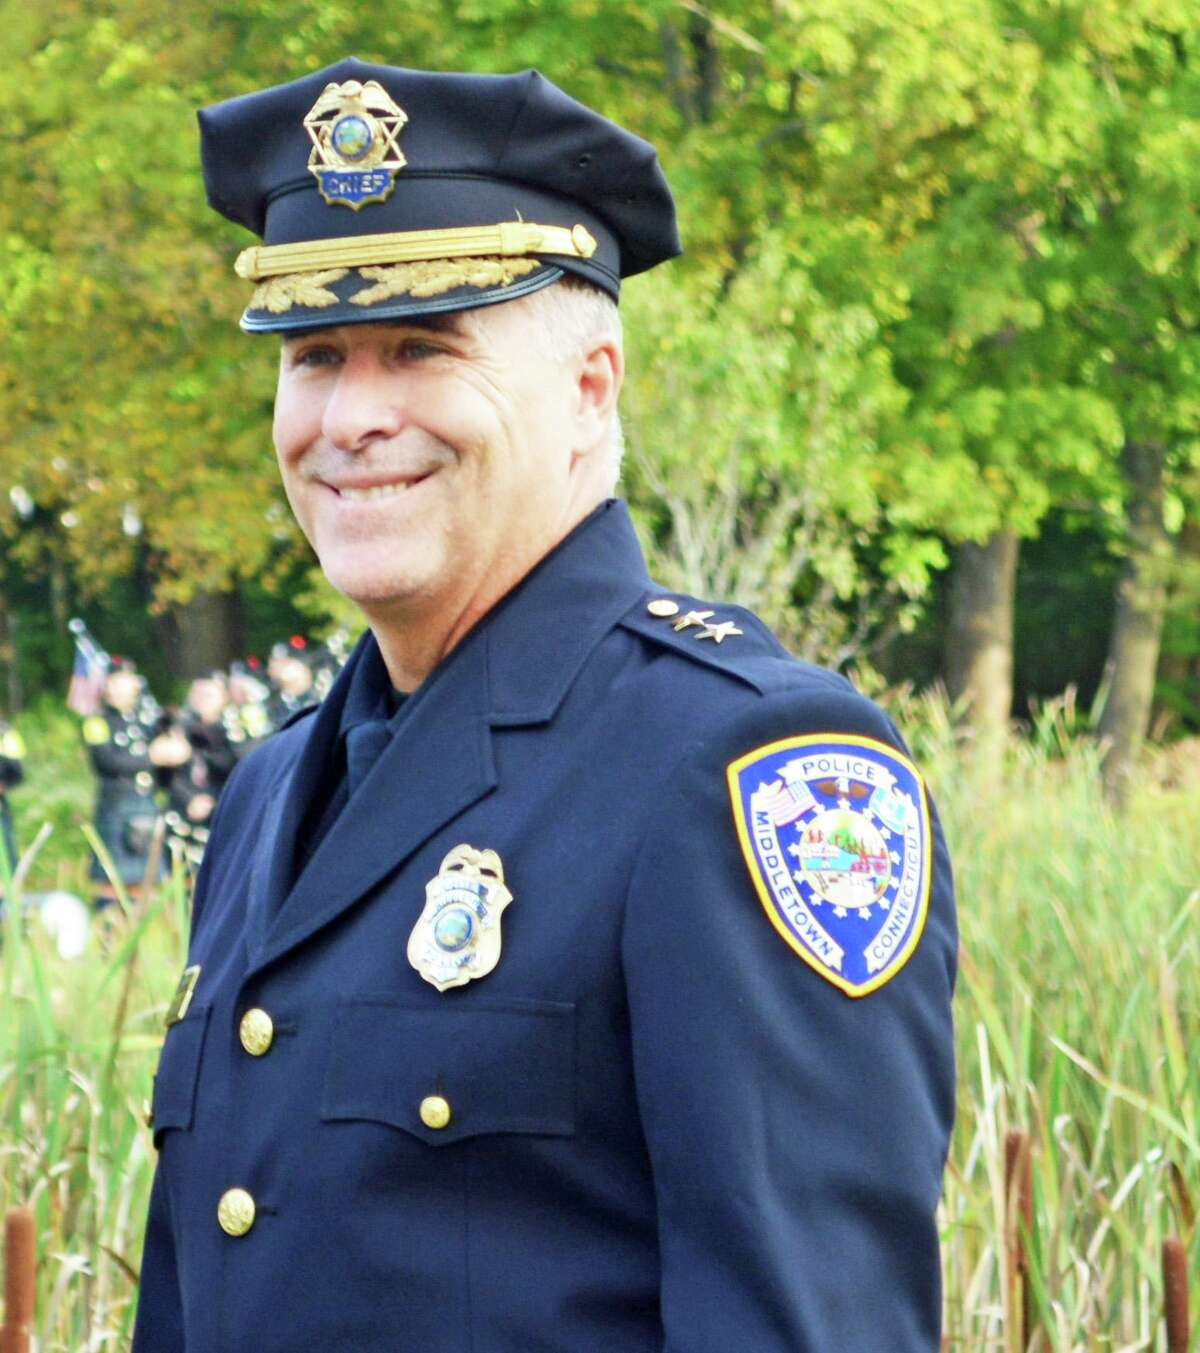 Former Middletown Police Chief William McKenna retired in June 2020. Deputy Chief Michael Timbro has been acting chief for a year.